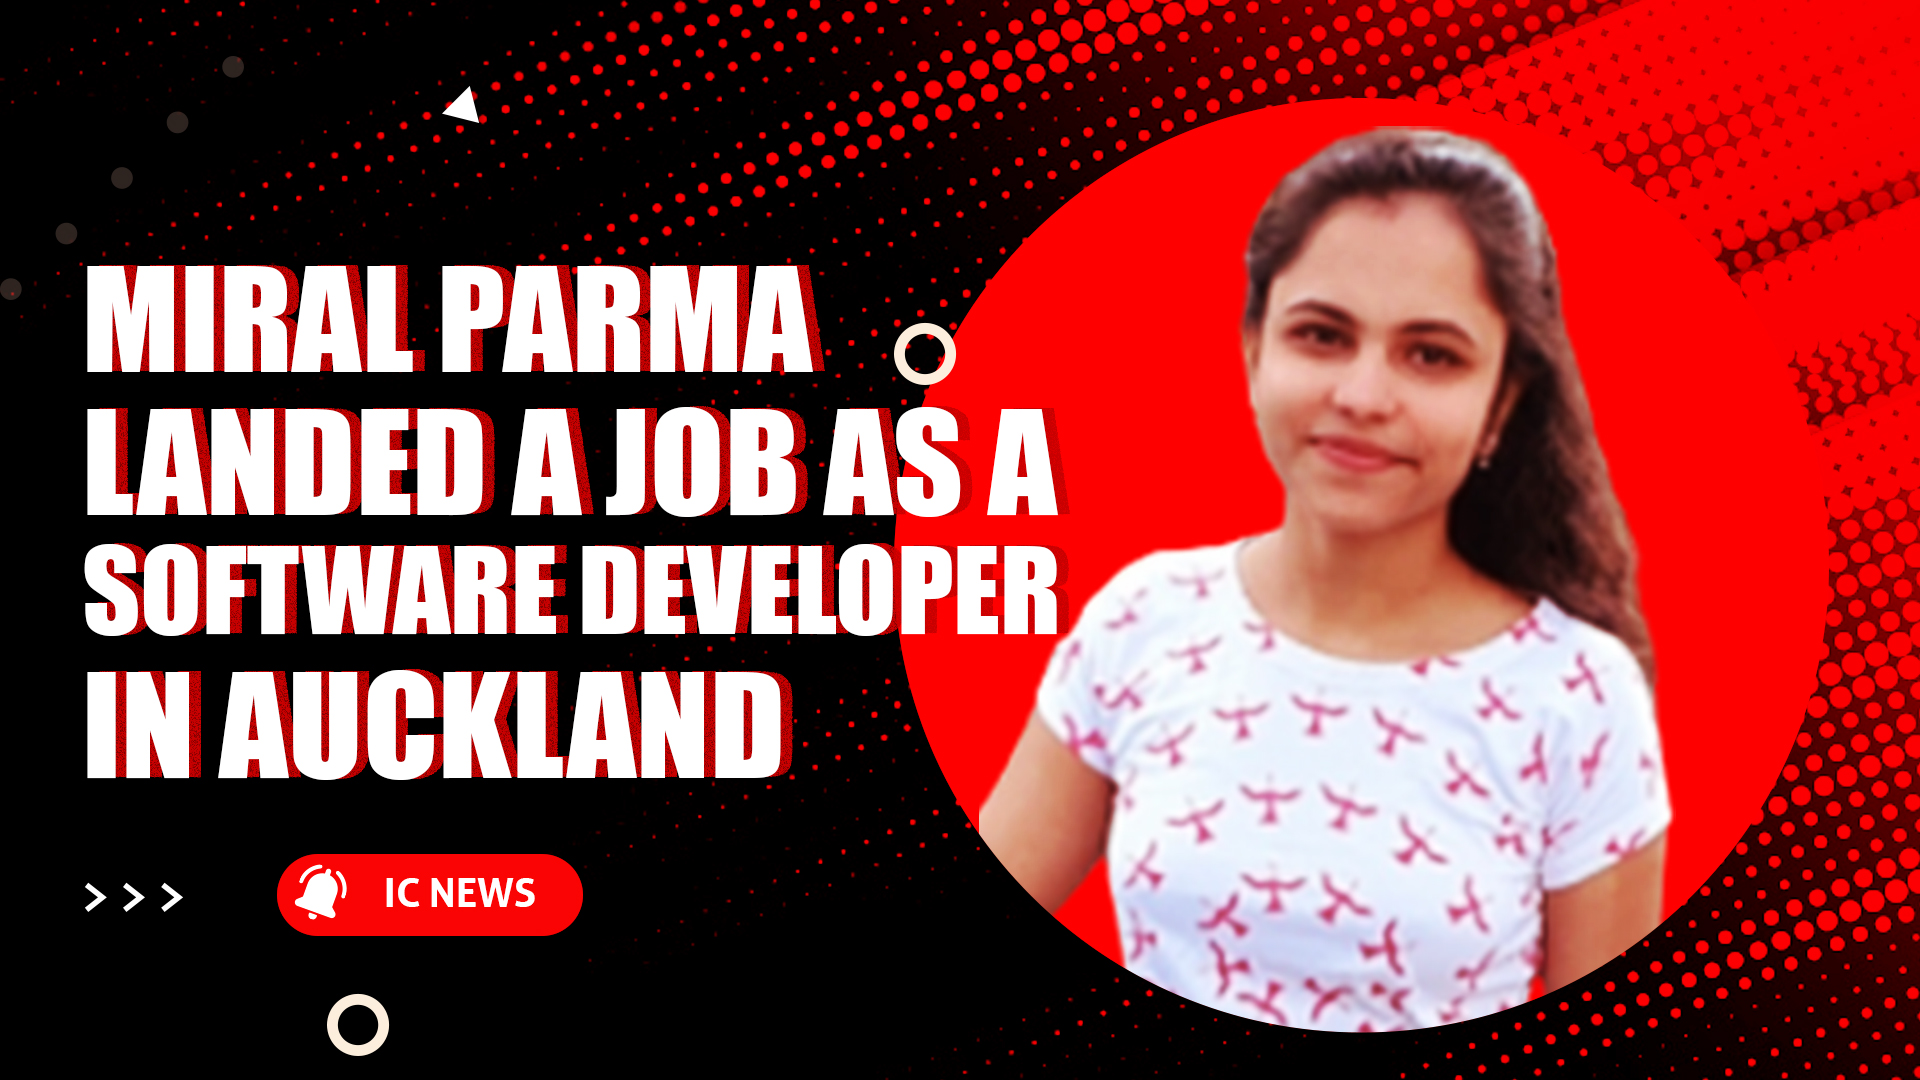 Miral Parma landed a job as a Software Developer in Auckland